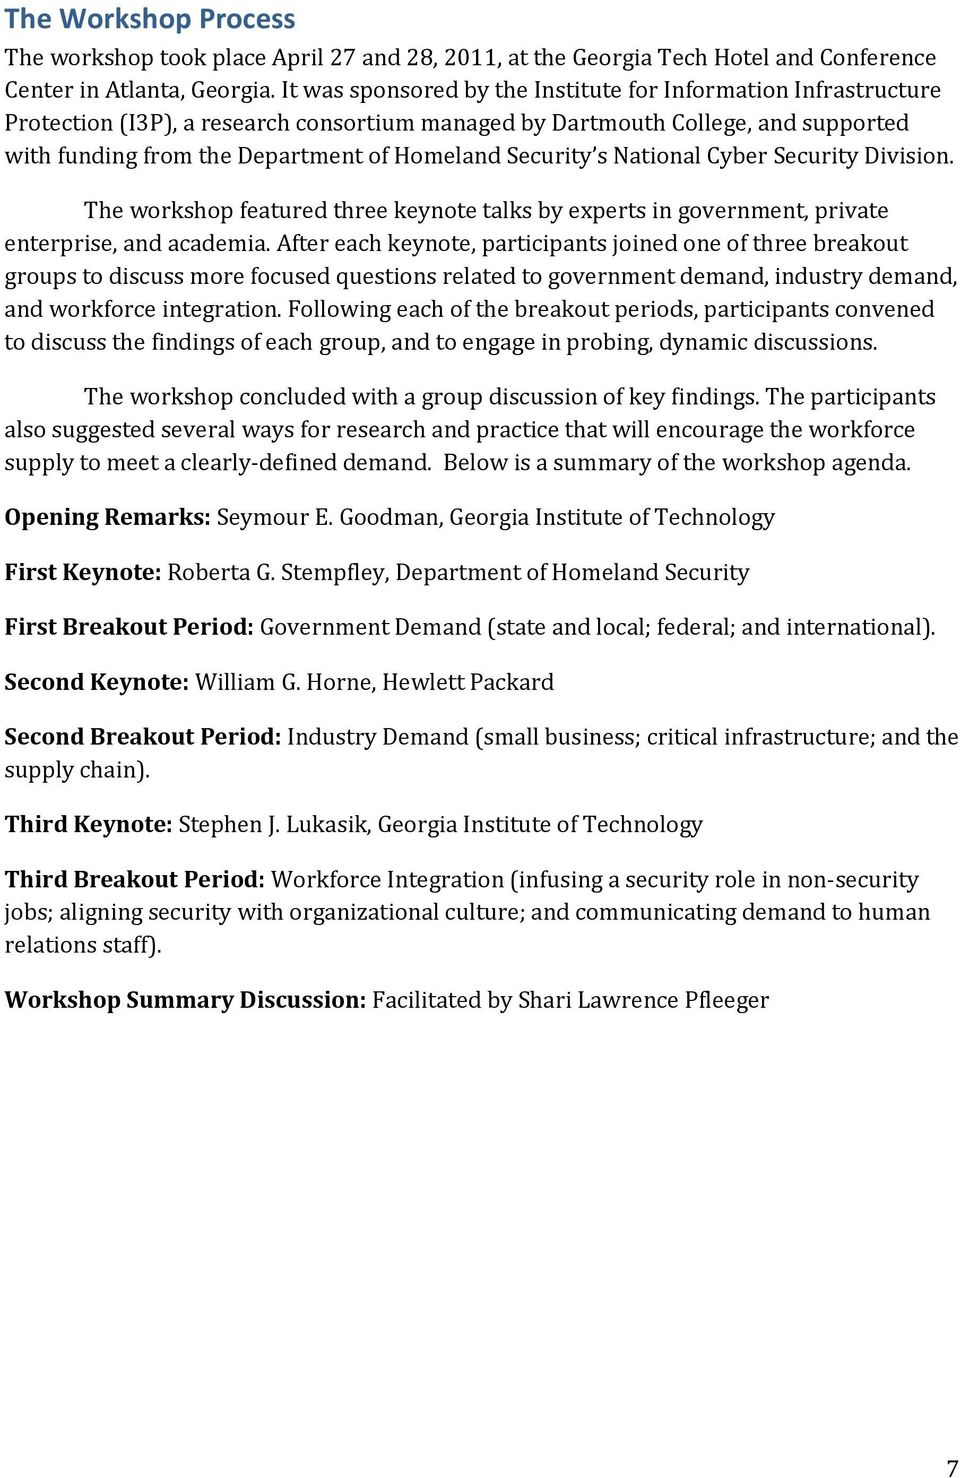 Security s National Cyber Security Division. The workshop featured three keynote talks by experts in government, private enterprise, and academia.